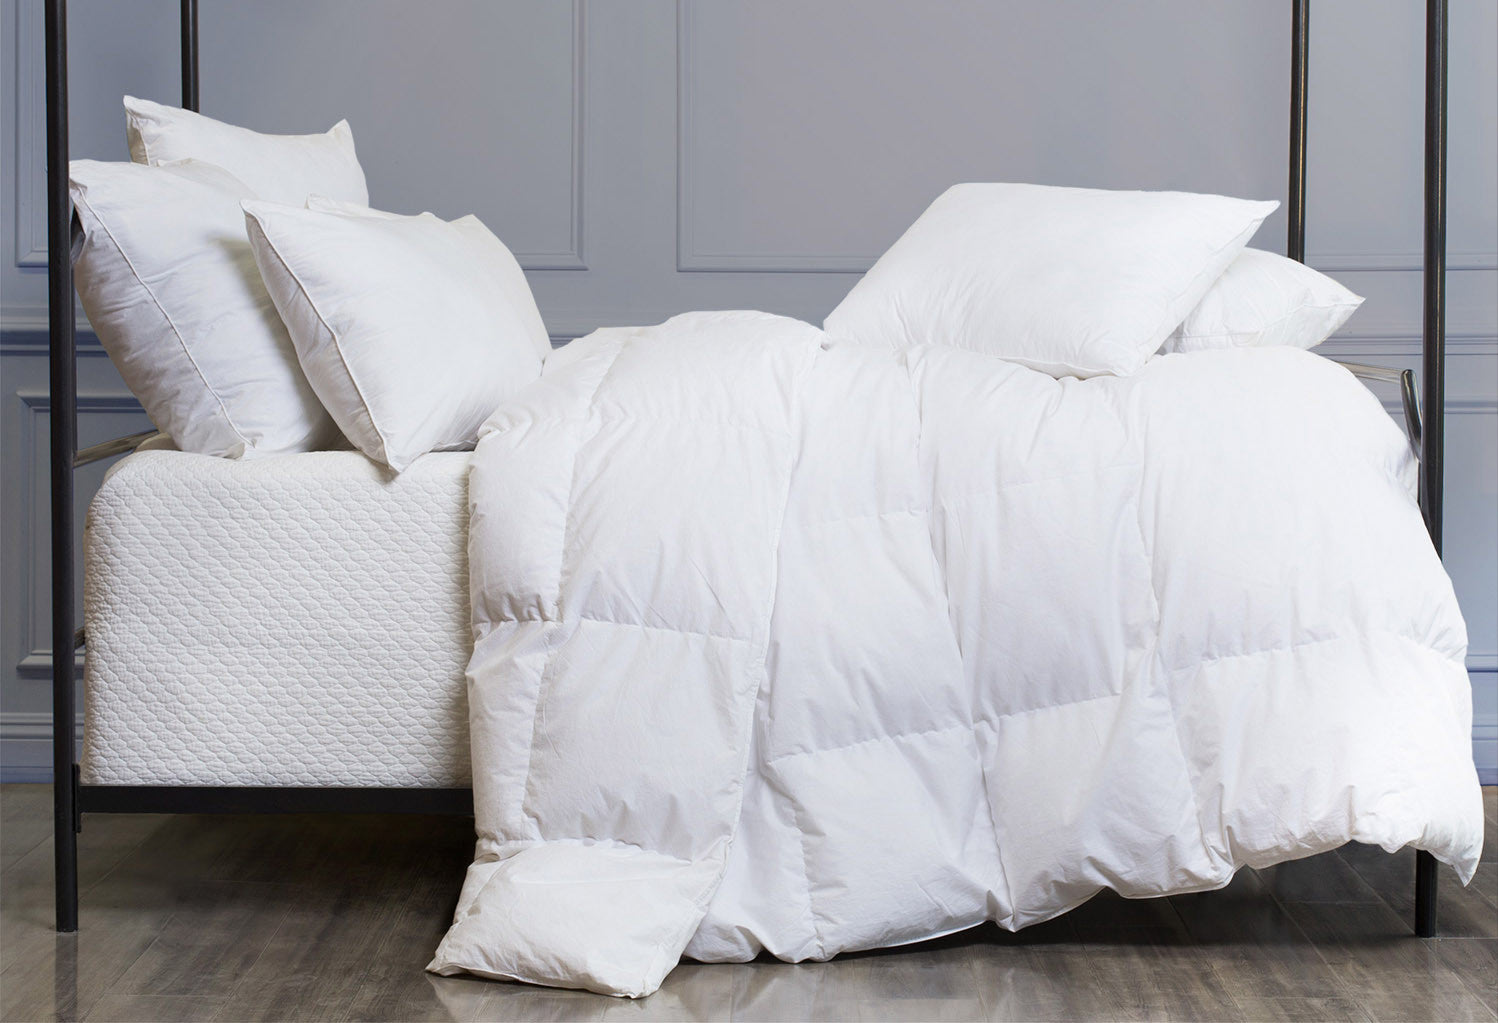 bedding comforters main duvet all comforter season joss alternative inserts down